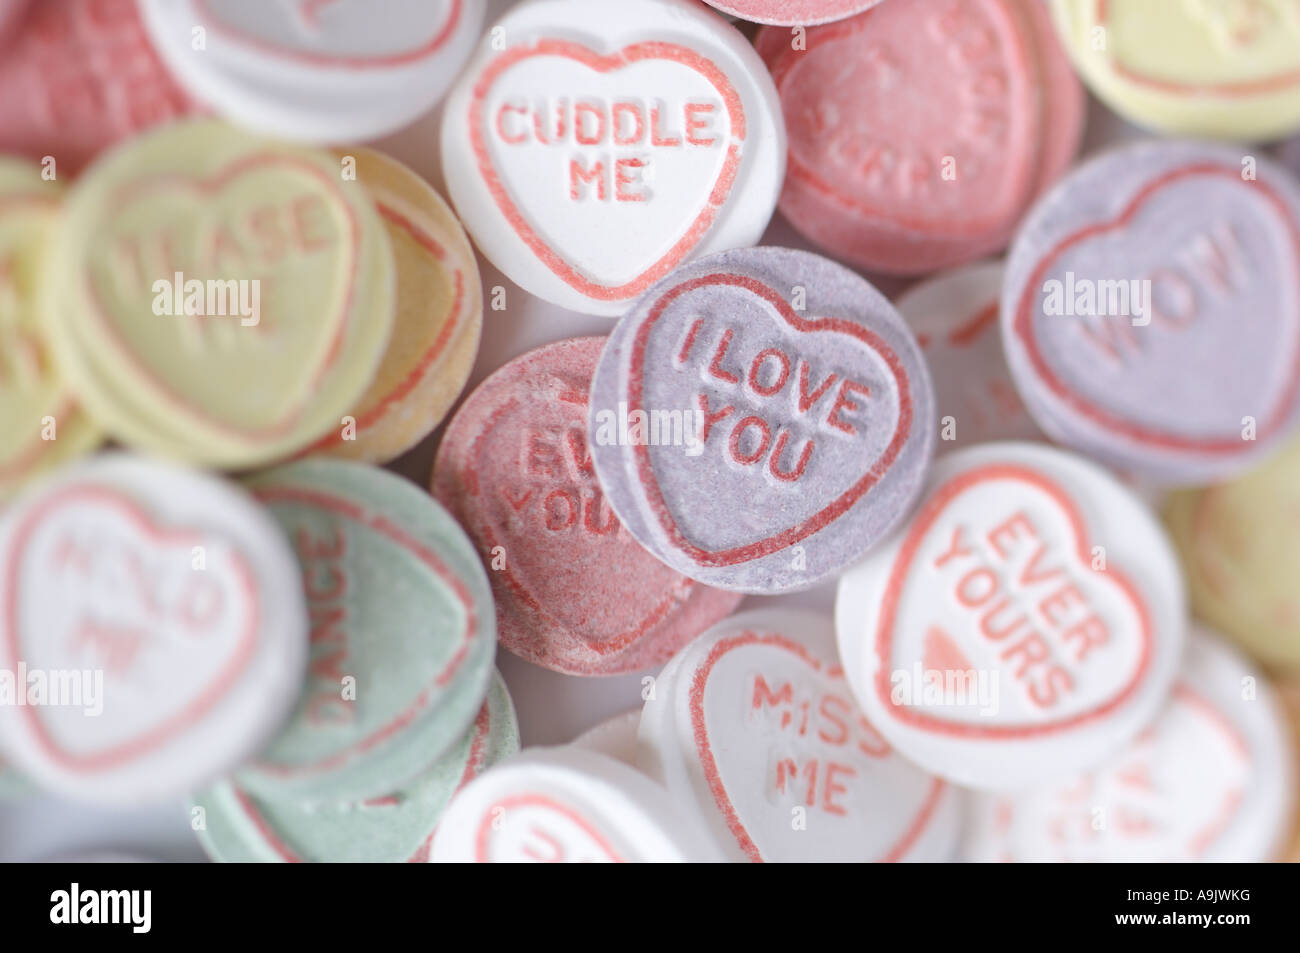 ever yours, i love you, love hearts. valentines. romance. sweets